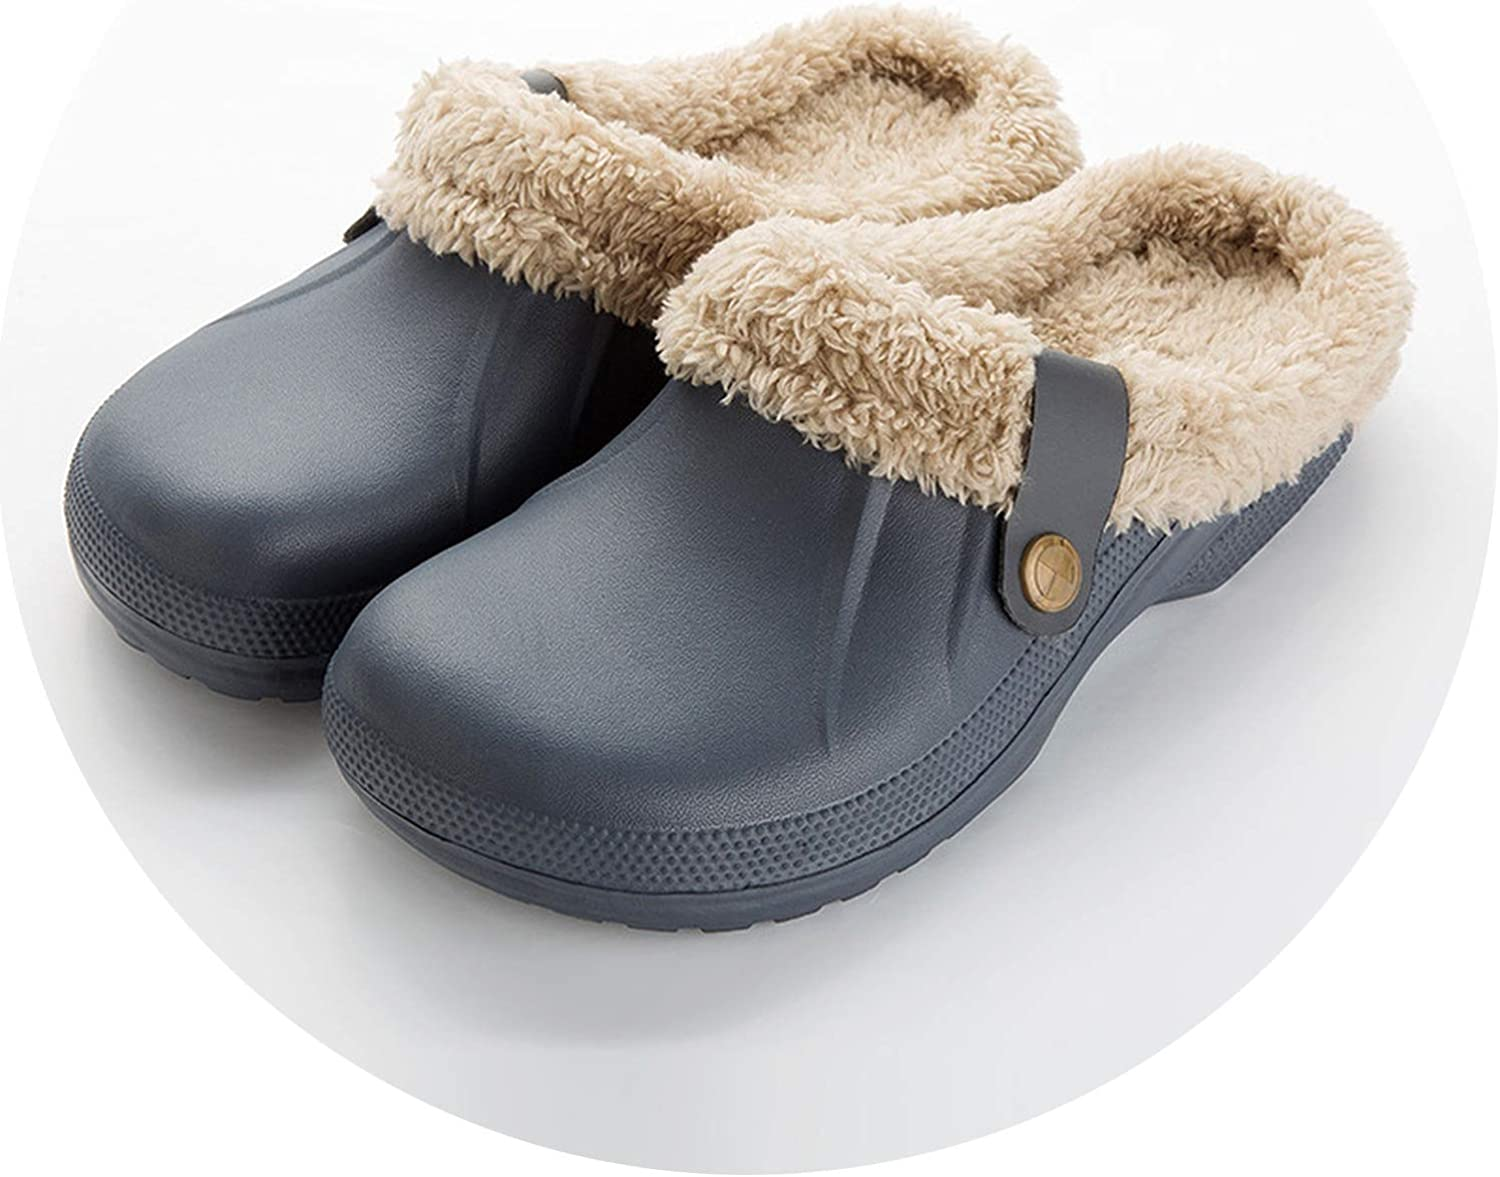 bluee-shore Winter Warm Slippers Indoor Soft shoes with Fur Home Floor Women's Sandals Slipper